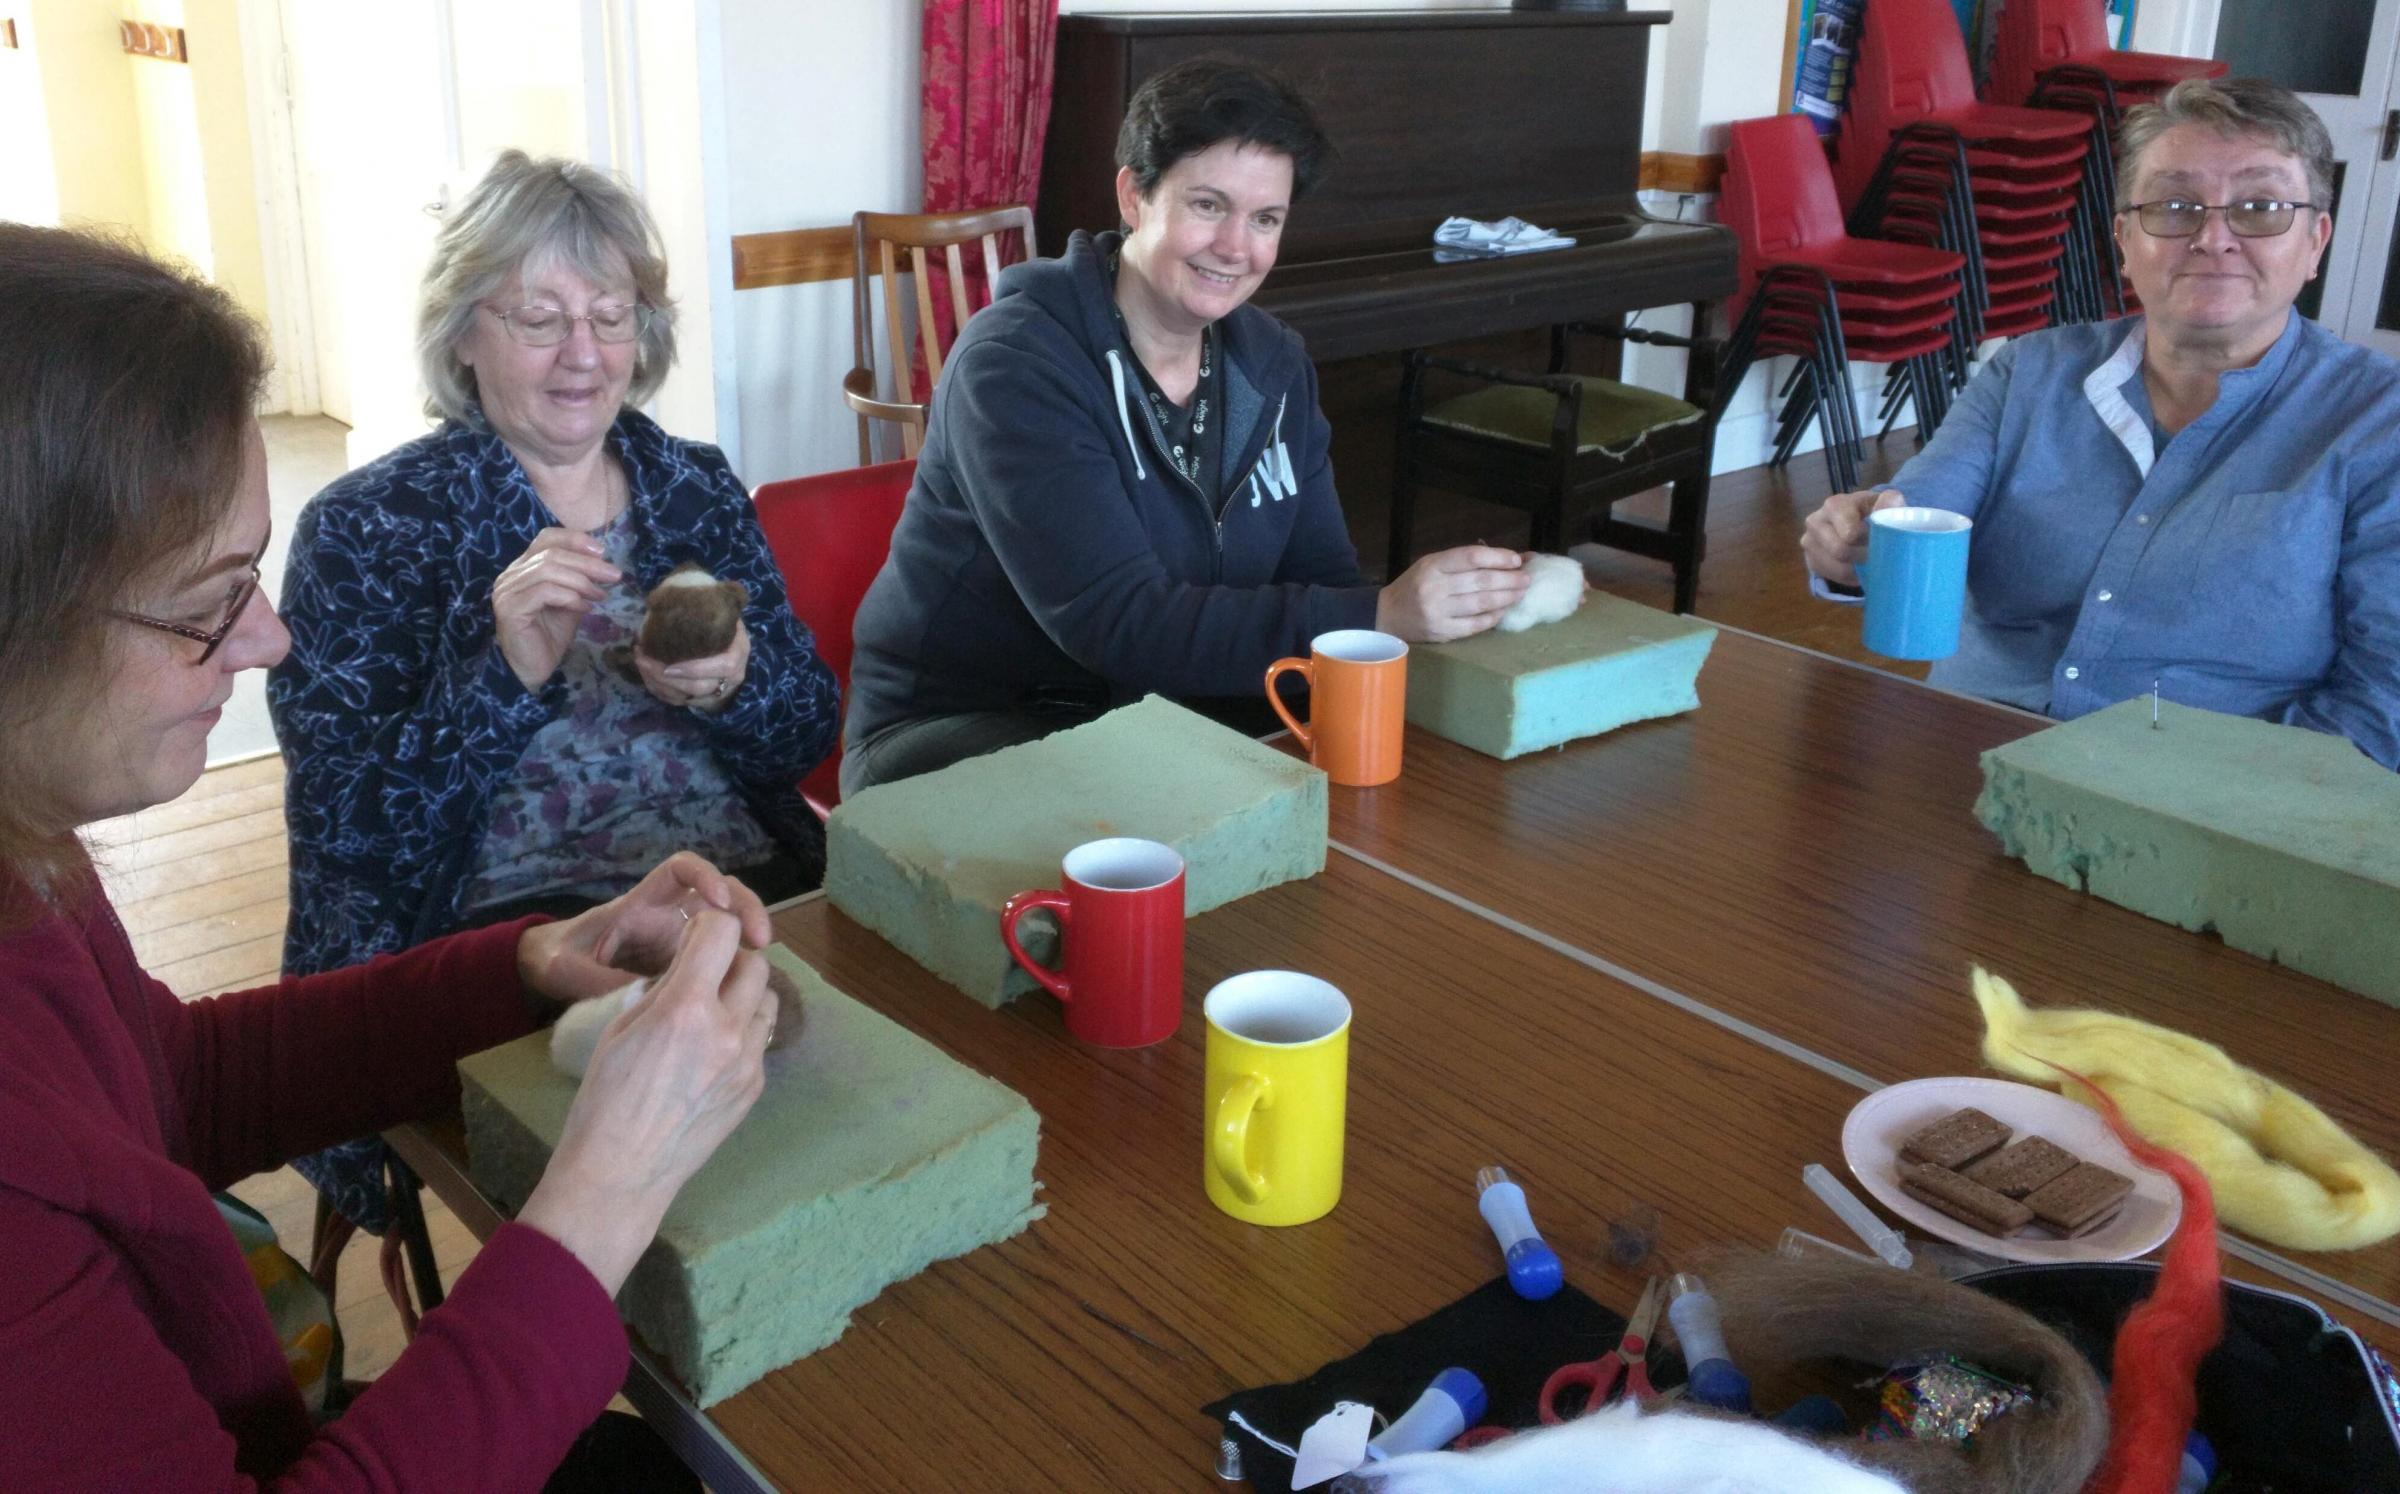 Independent Arts has received funding to support its Anxiety Café from The People's Health Trust.